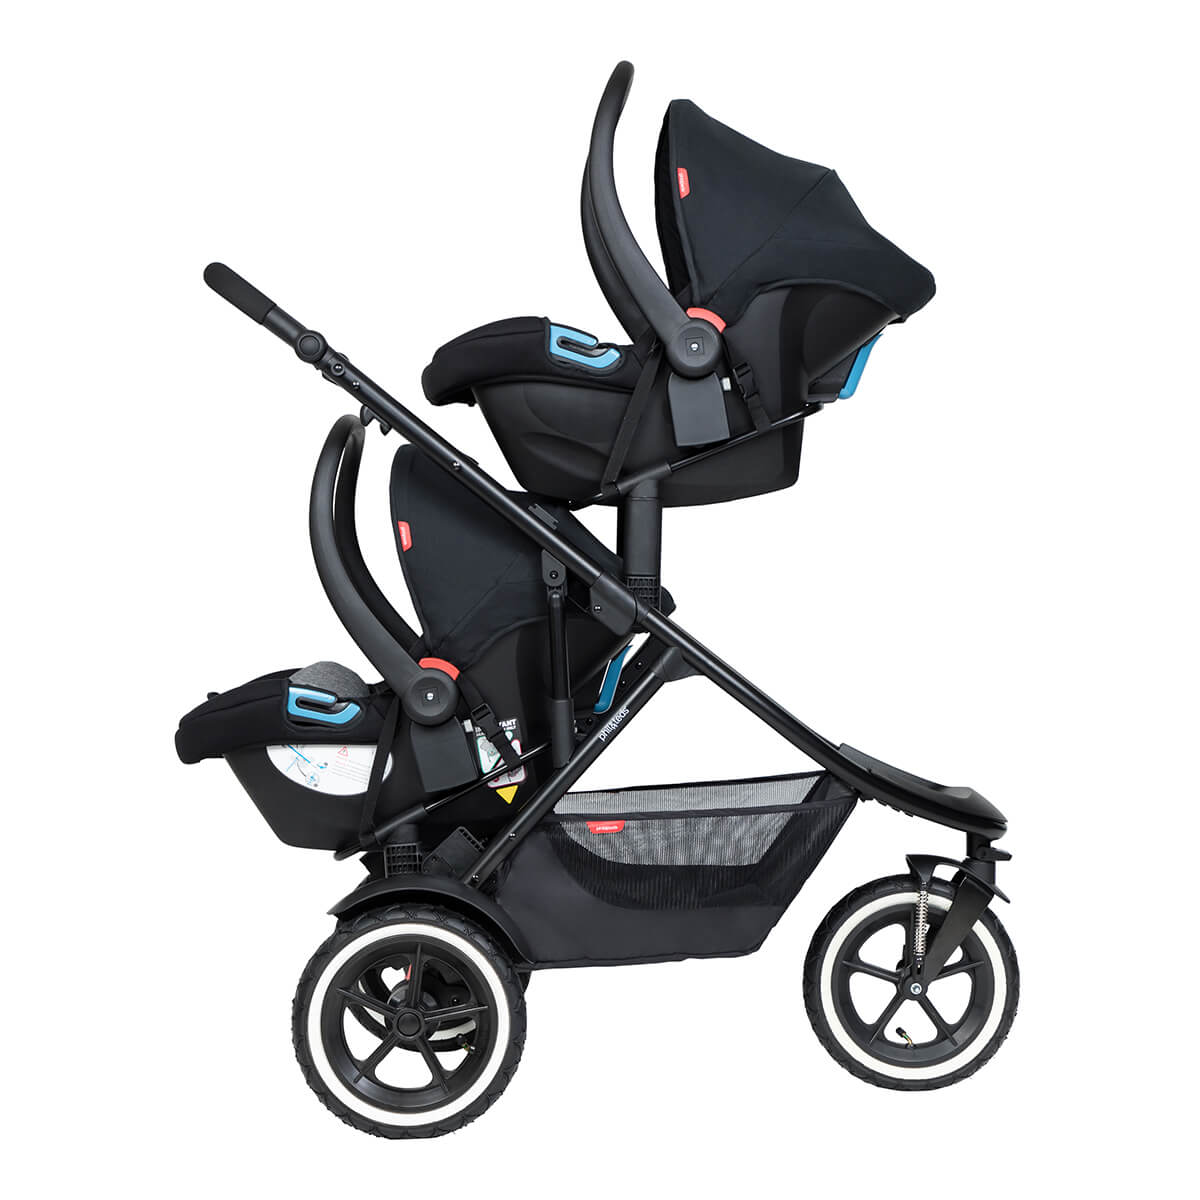 https://cdn.accentuate.io/4546158166121/19119322923113/philteds-sport-buggy-with-double-alpha-travel-system-v1625778356207.jpg?1200x1200